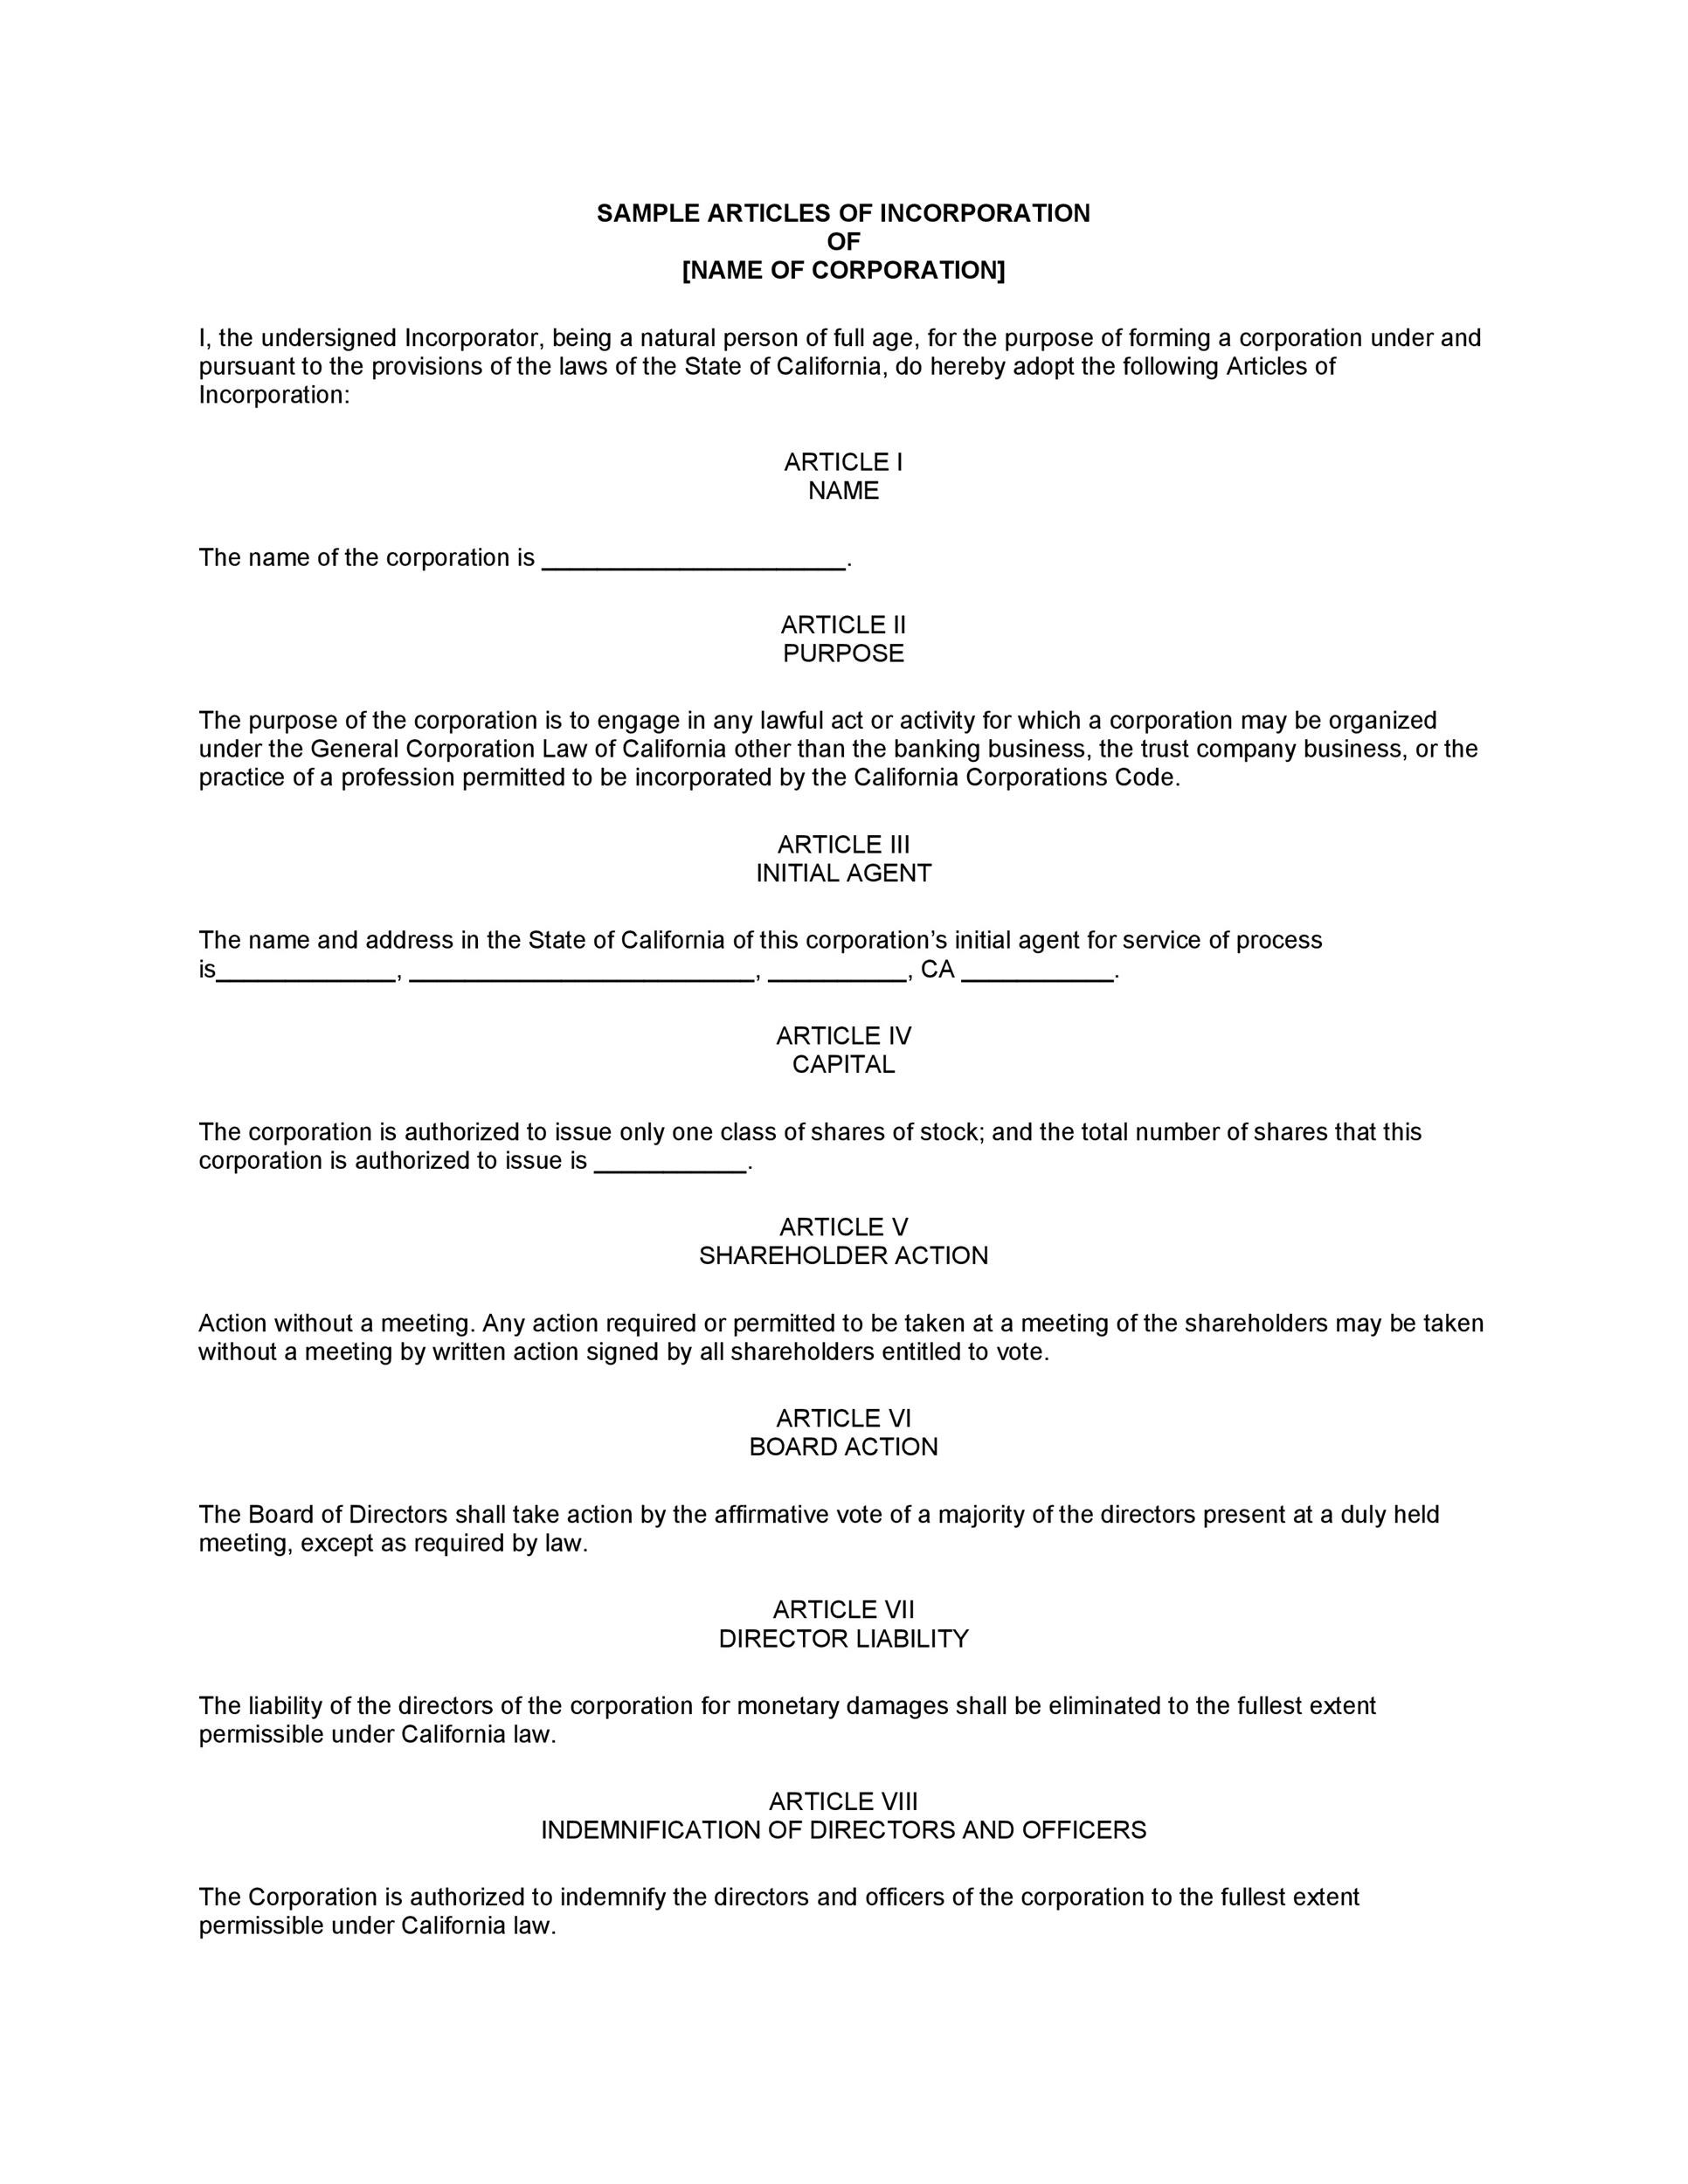 Articles Of Incorporation   Templates For Any State  Template Lab